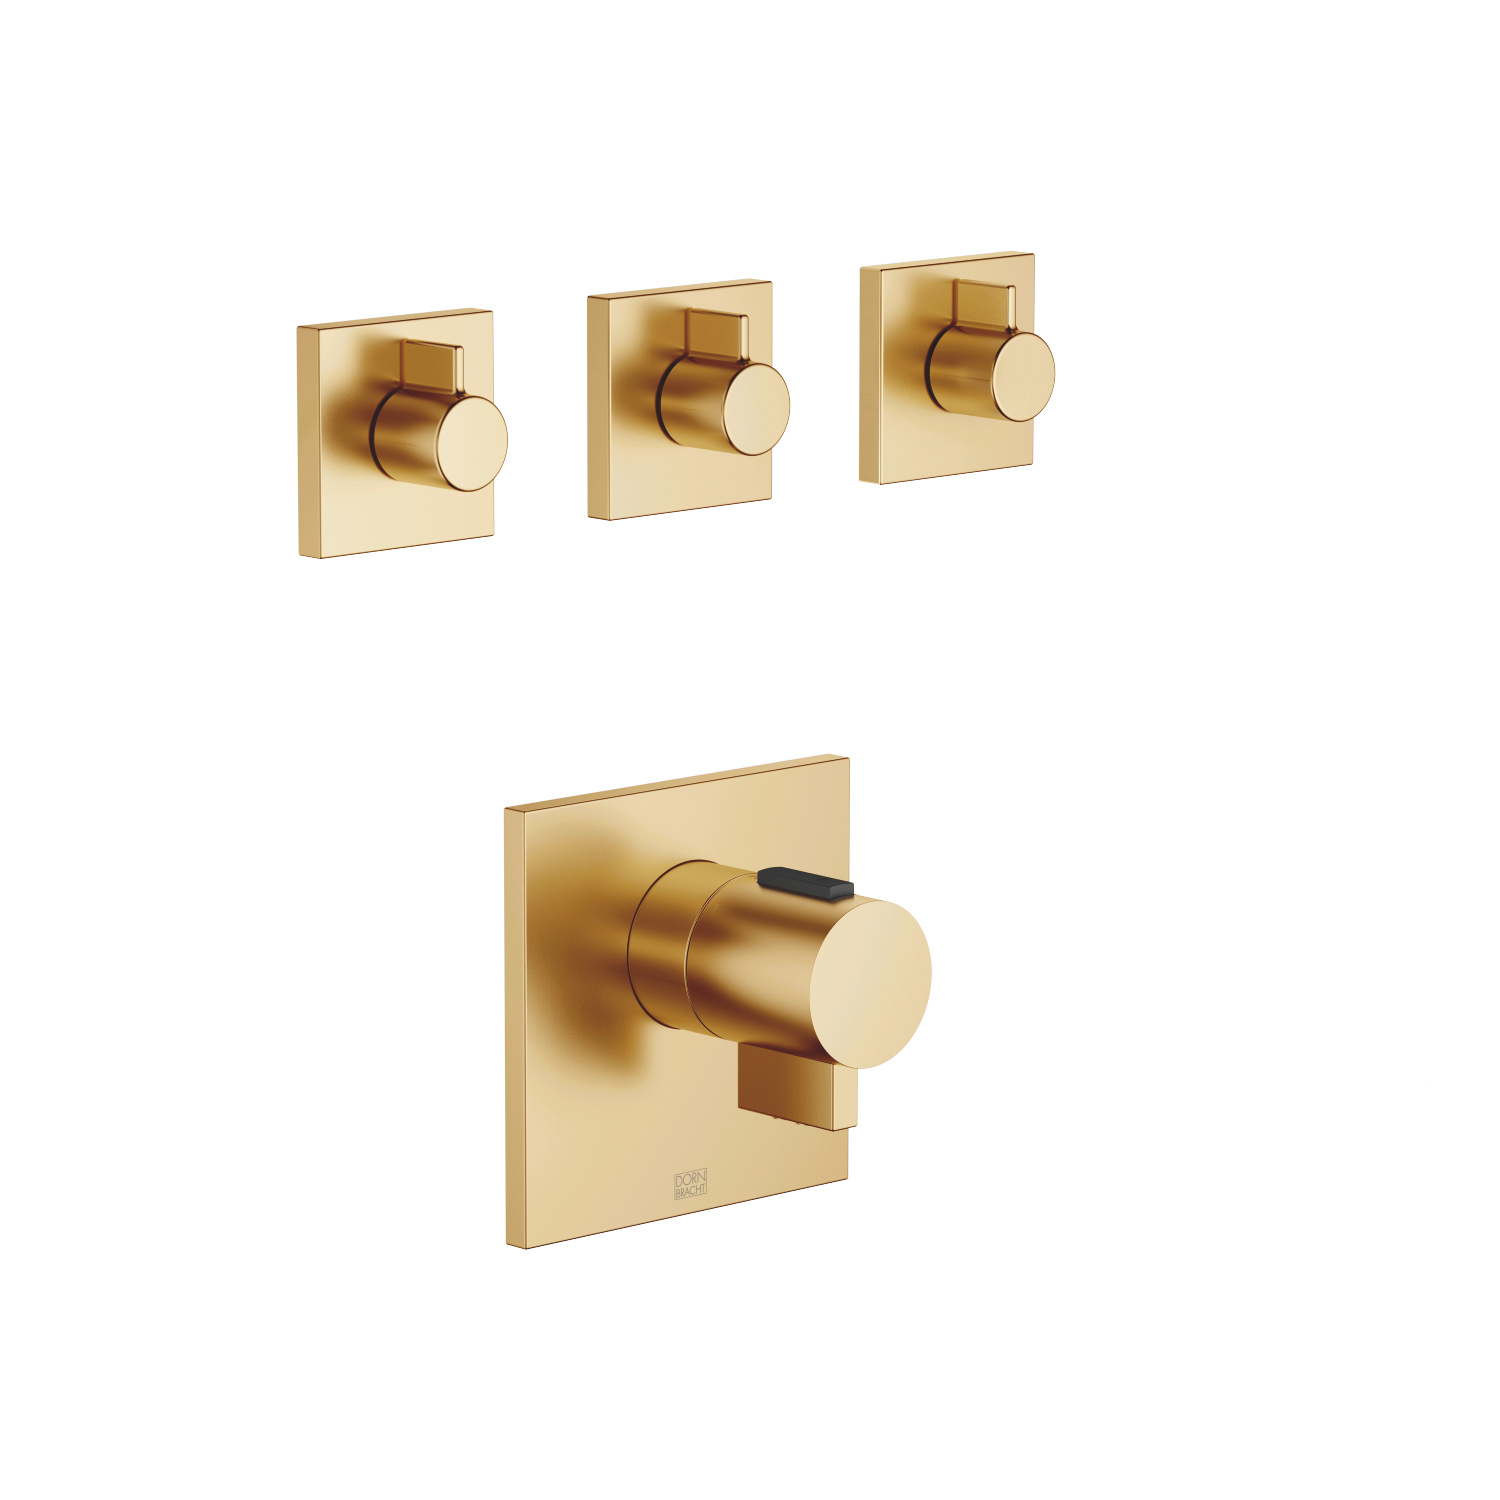 xTOOL thermostat - Brushed Durabrass